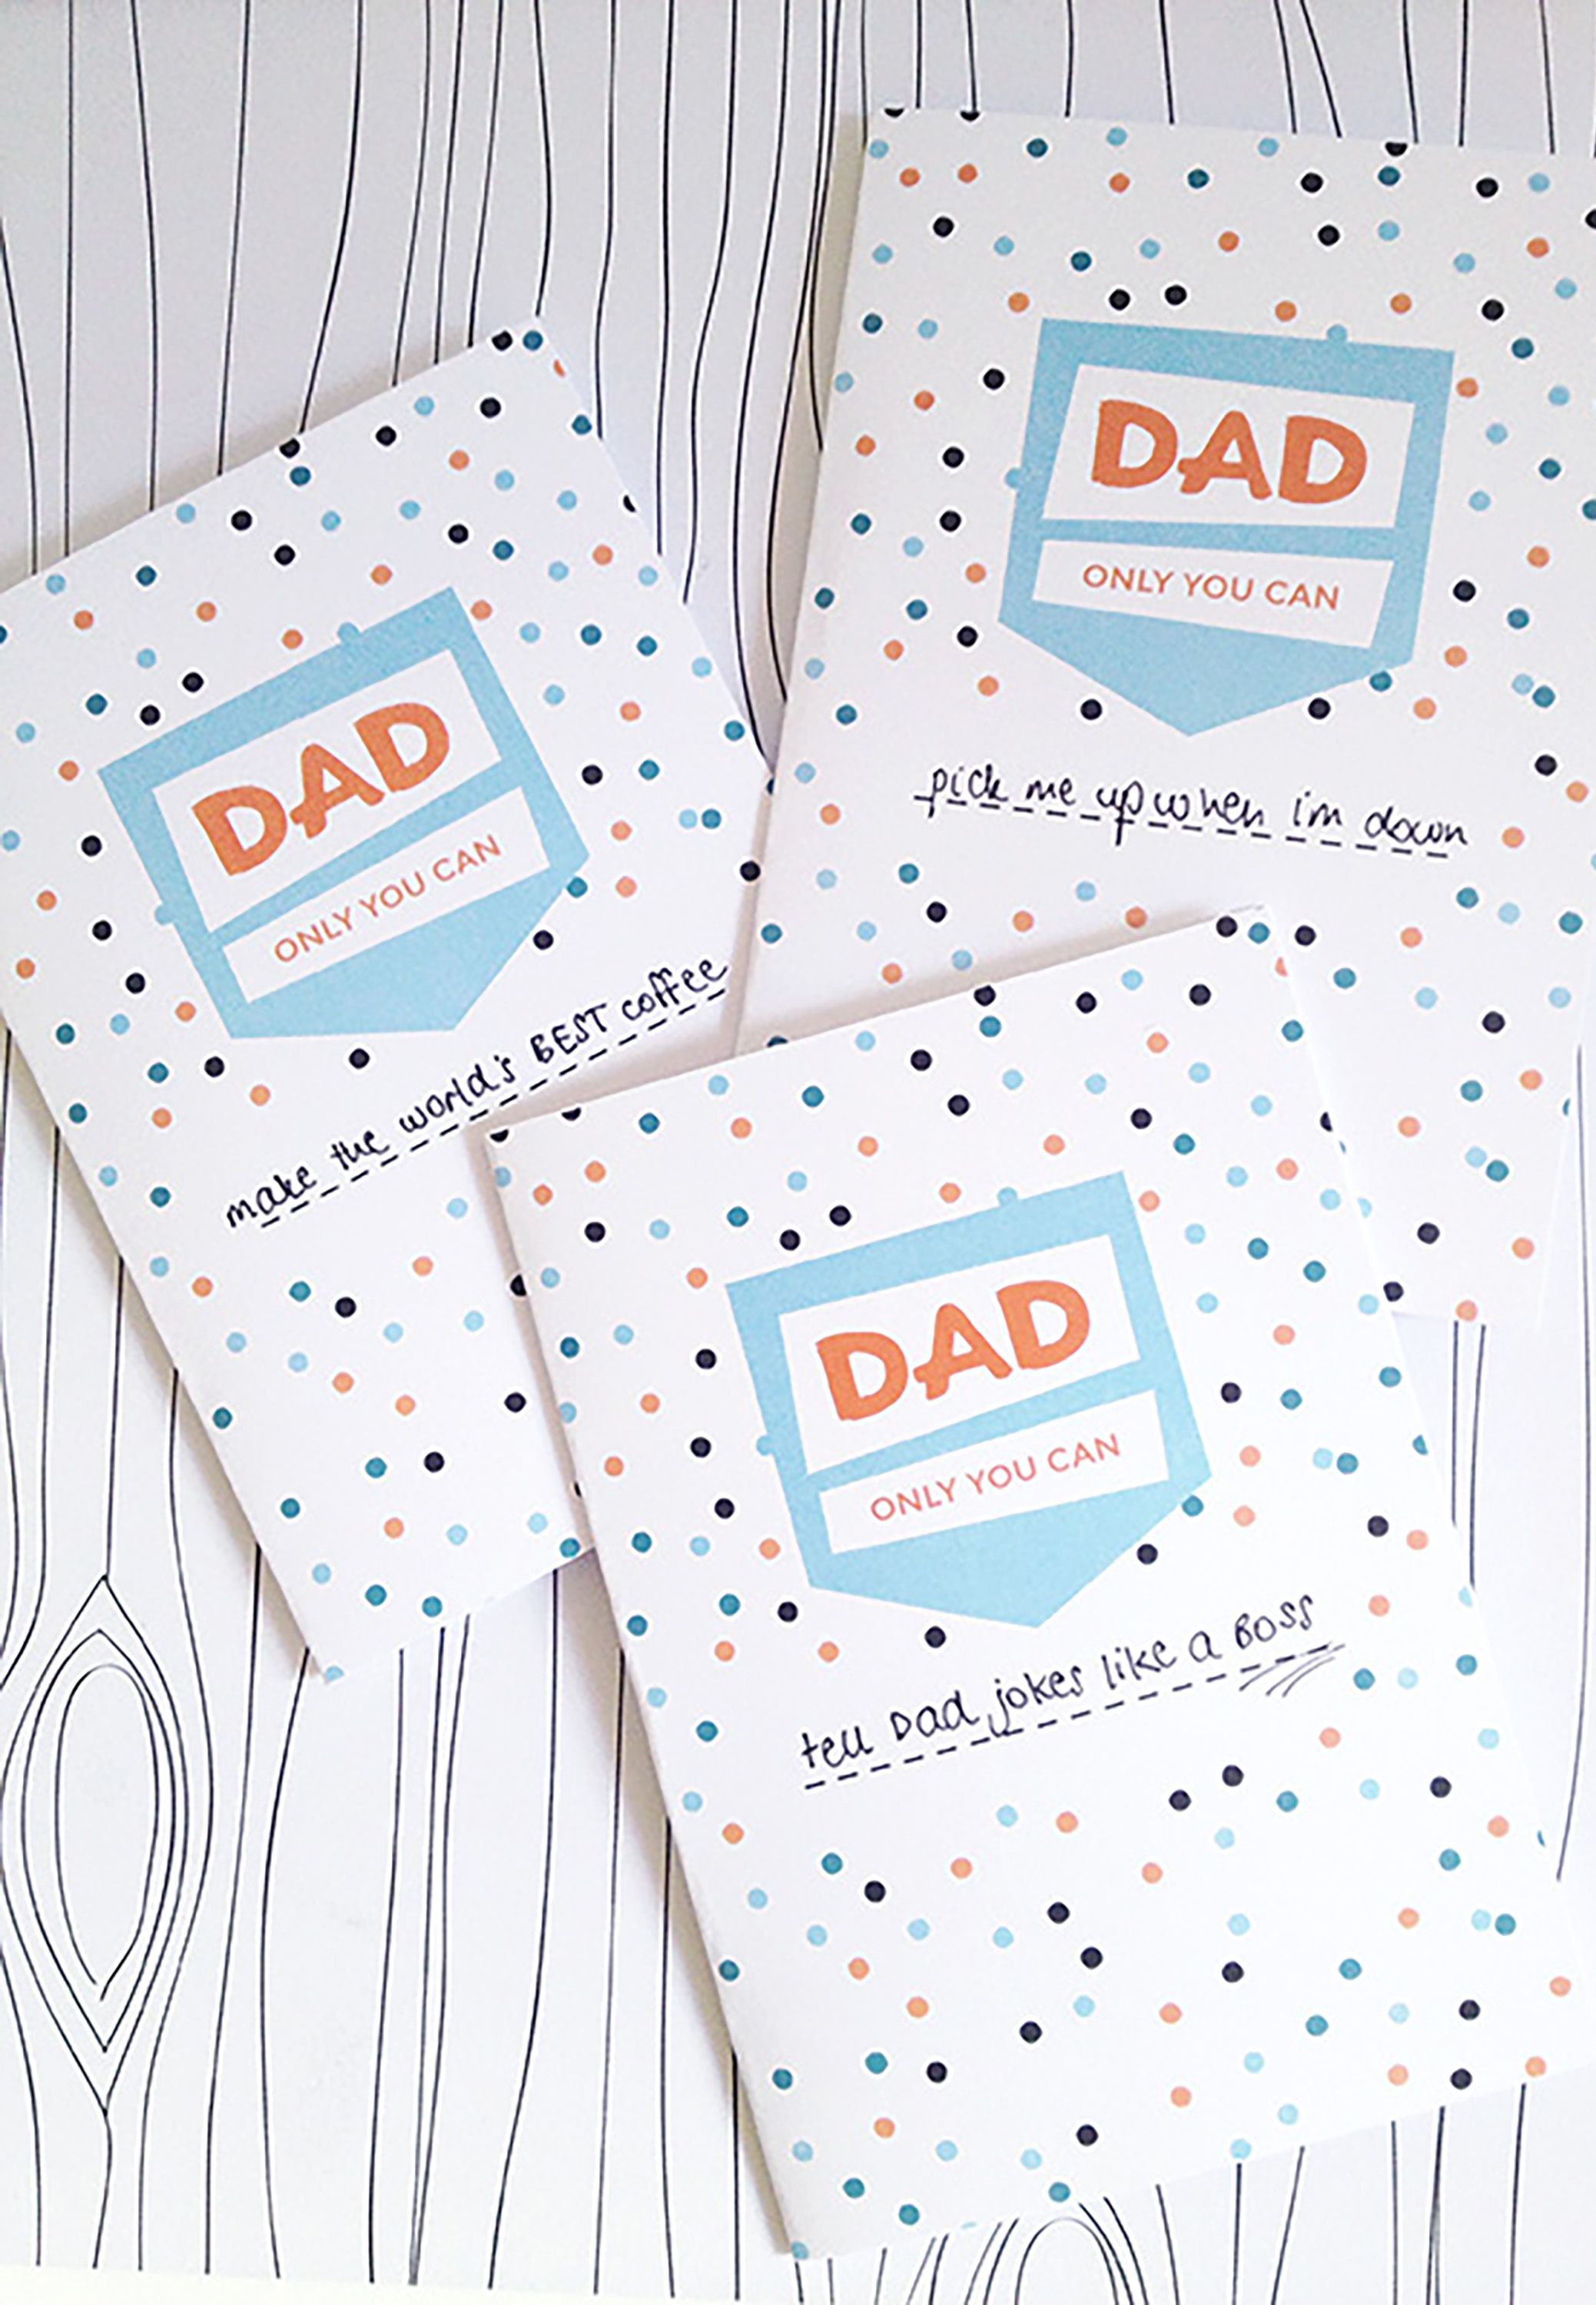 picture regarding Printable Fathers Day Card titled 25 Printable Fathers Working day Playing cards - Free of charge Printable Playing cards For